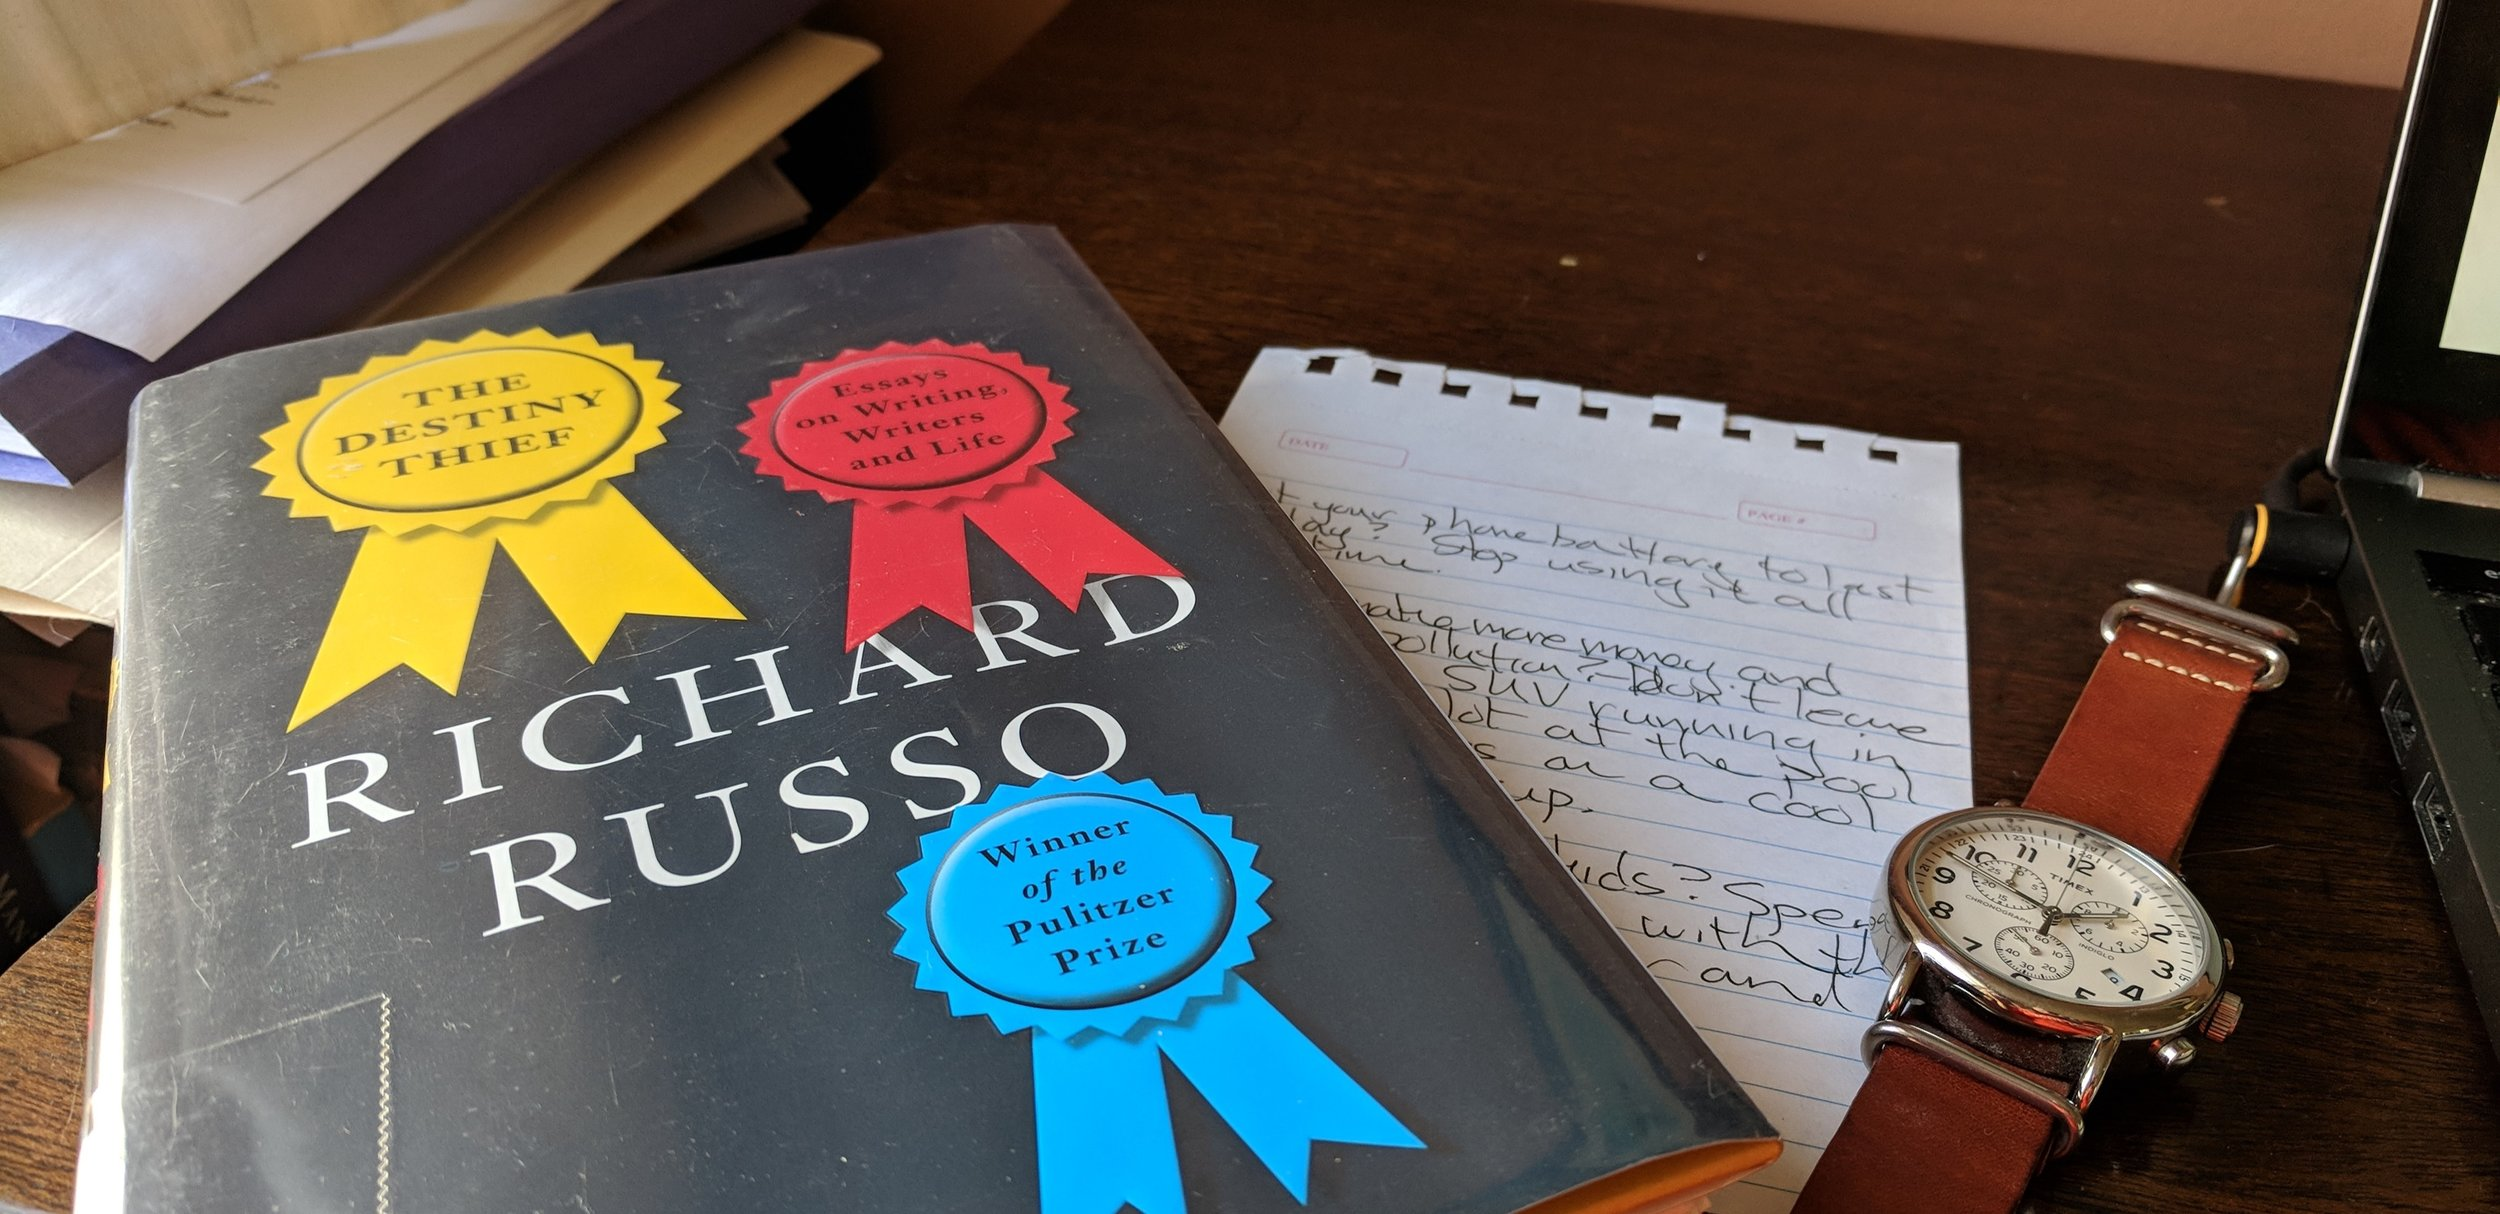 Russo's advice, my notes, and time. Those are at least some of the ingredients.